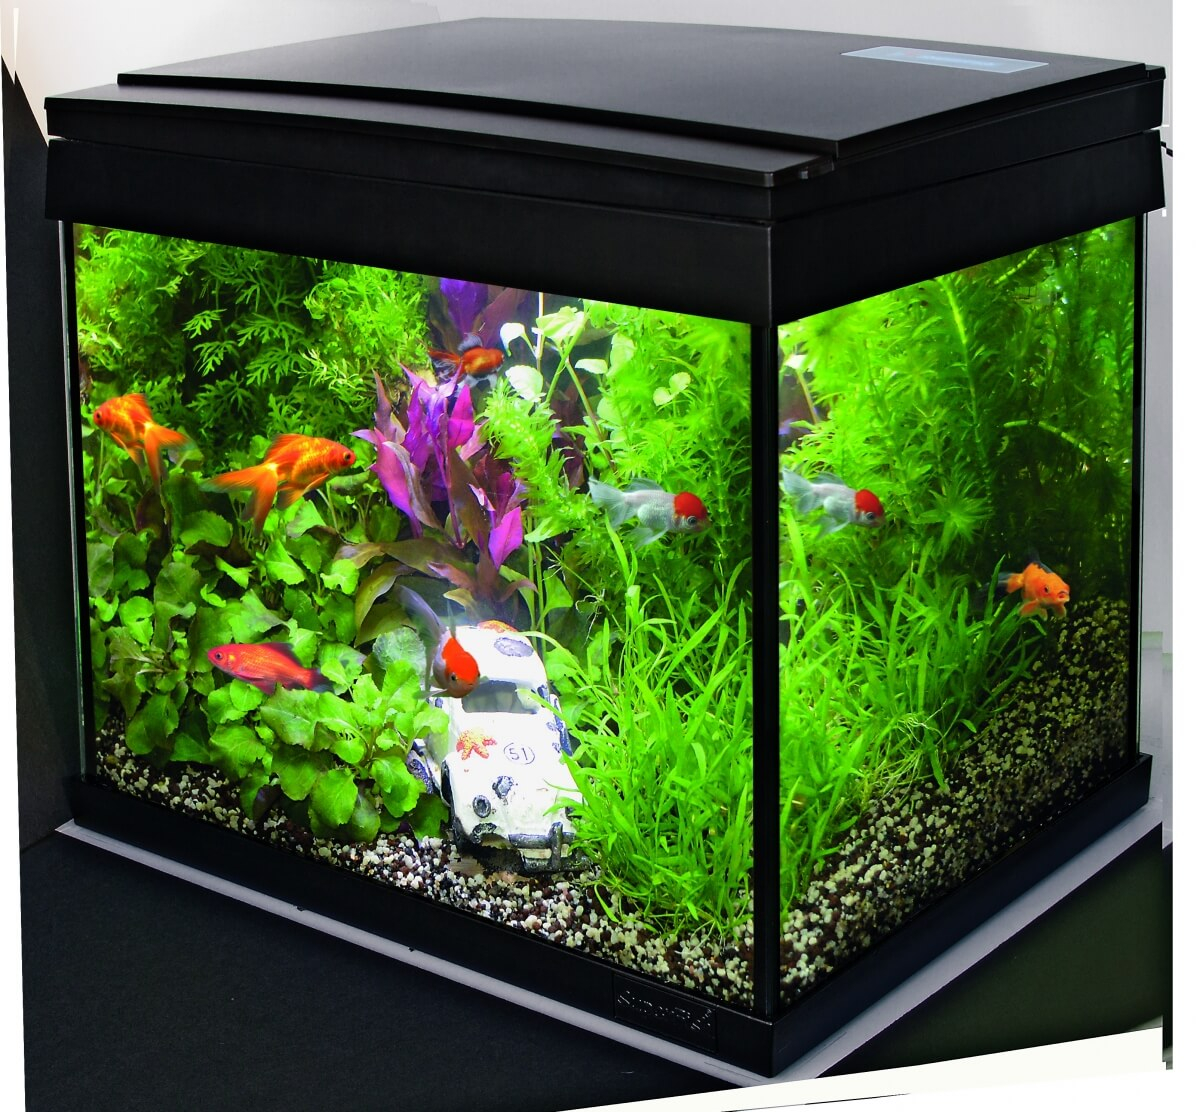 Aquarium aqua 20 led kit poisson rouge aquarium et meuble for Deco aquarium poisson rouge